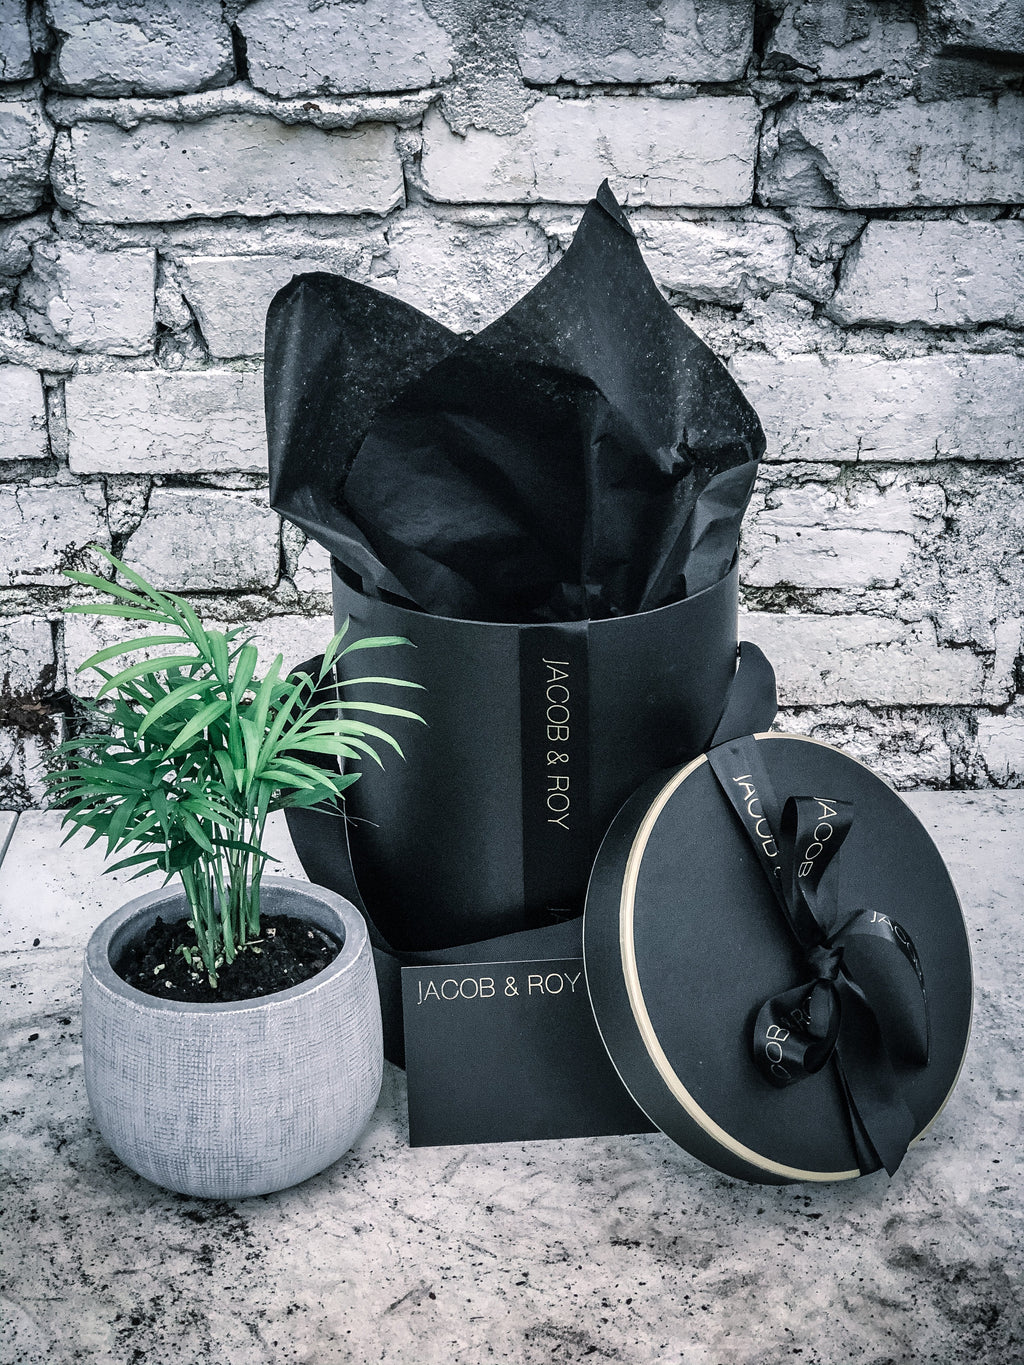 Current stock is large- Lush Parlour Palm in matte black or white pot